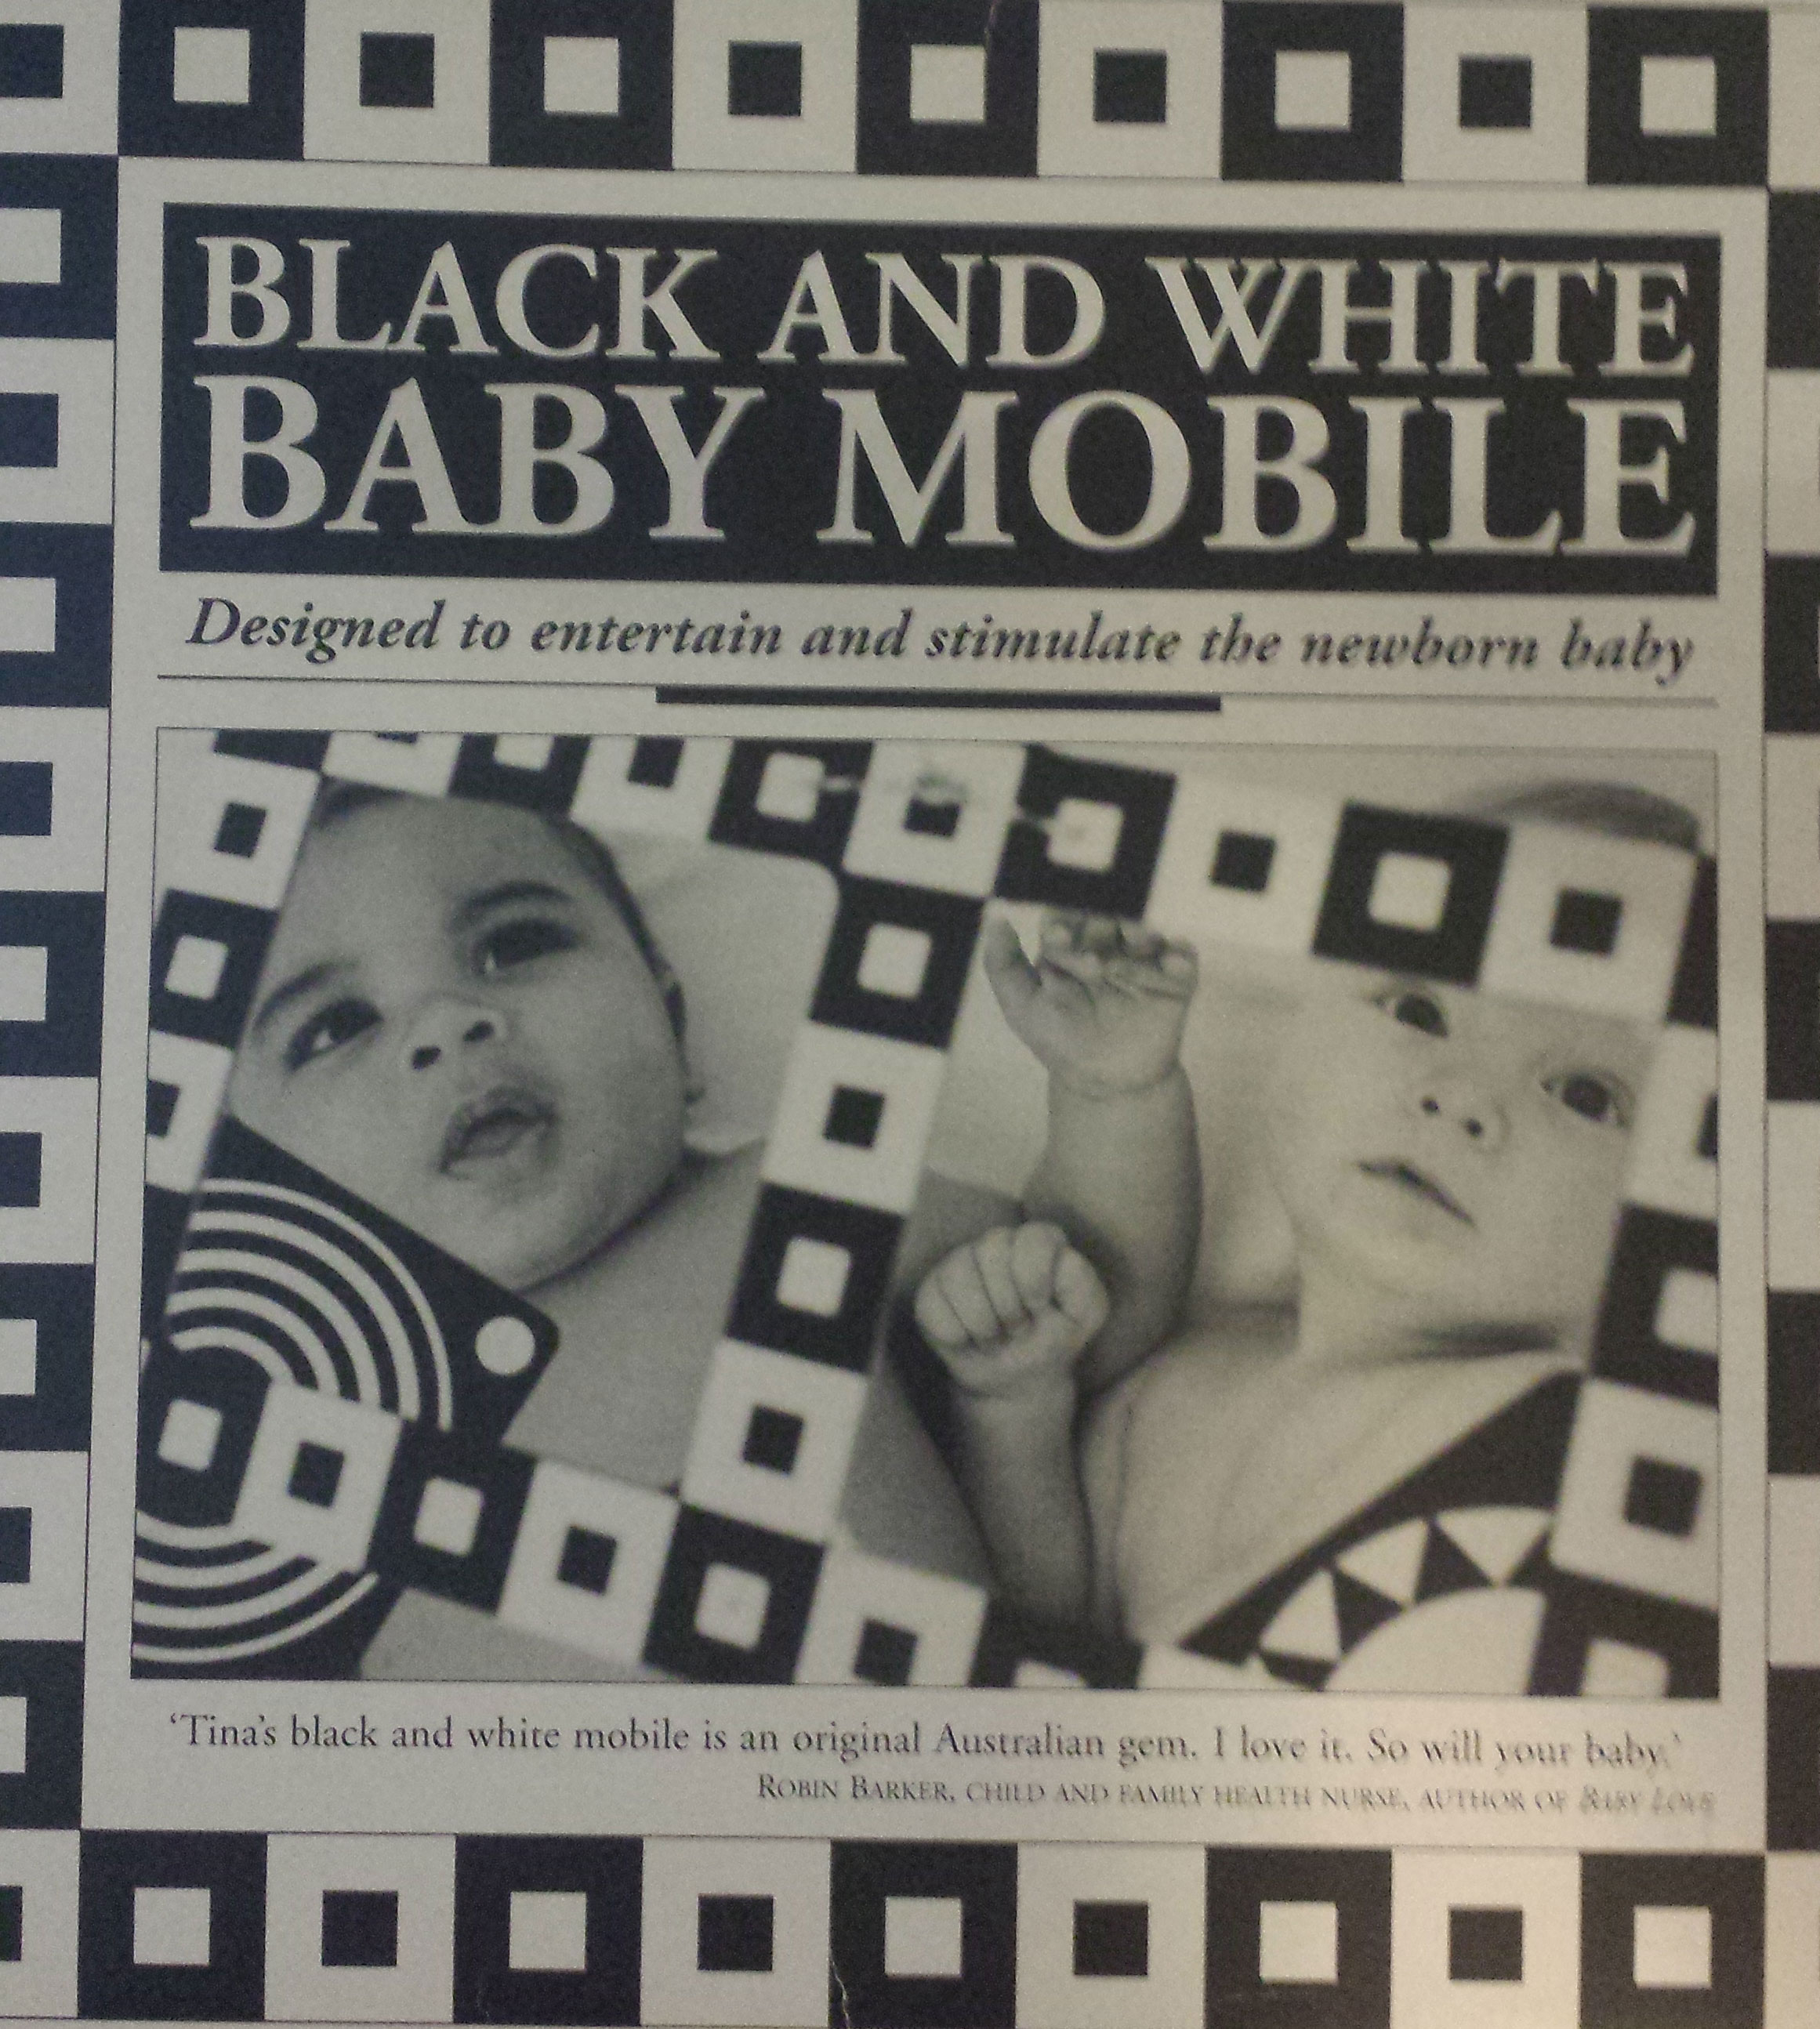 Black and white baby mobile designed and made in australia by tina - We Were Given This Mobile Among The Many Baby Gifts I Liked The Idea But Found The Execution Lacking So I Made My Own I Like Mine Better